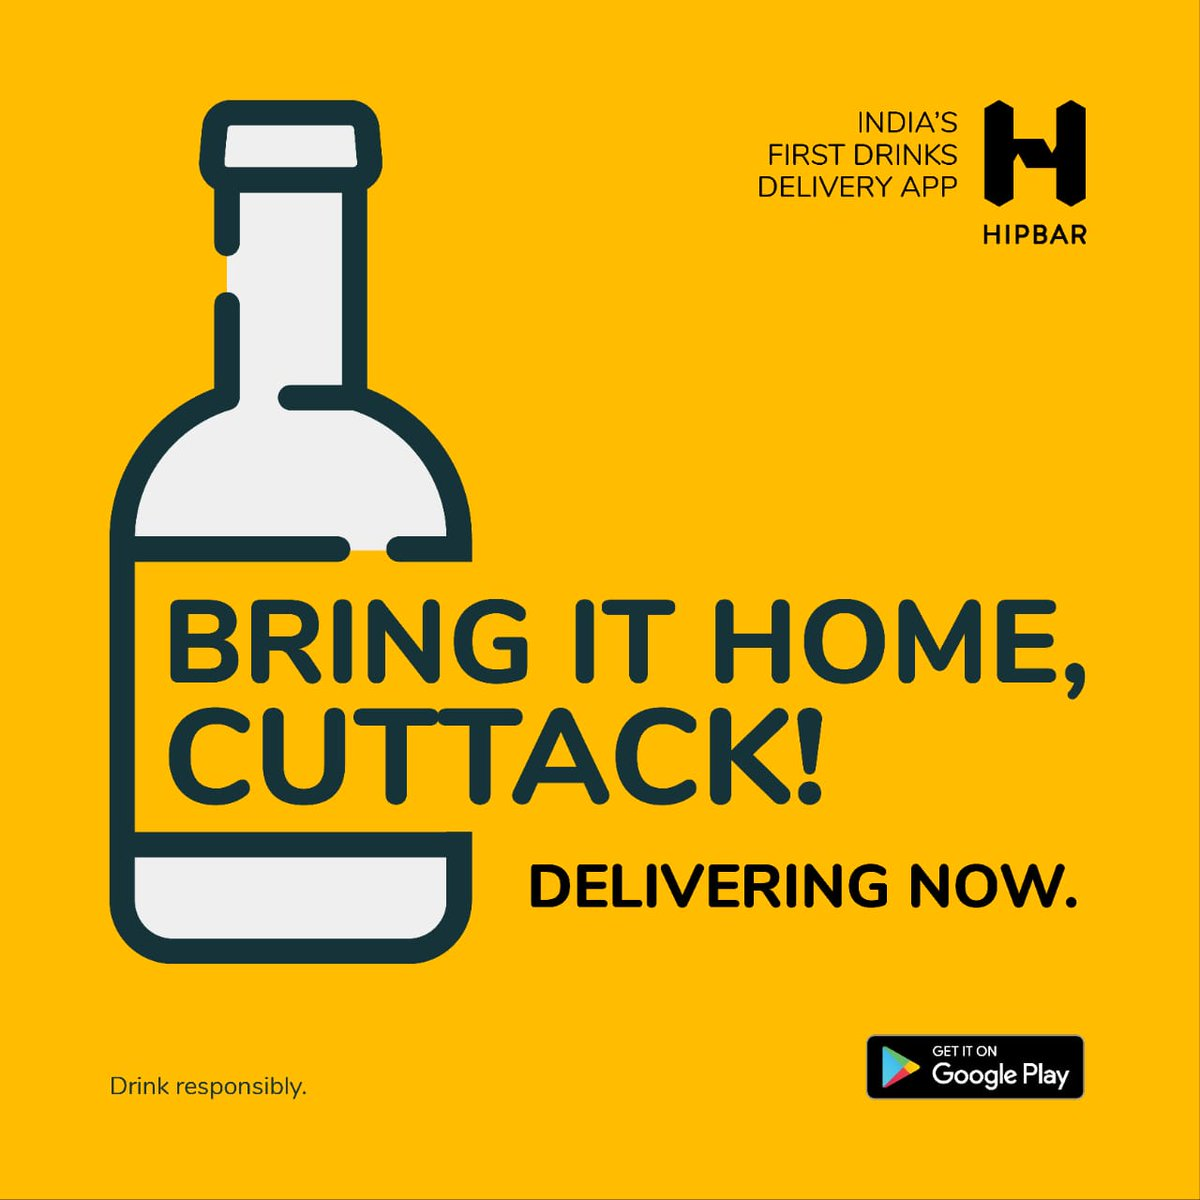 CHEERS CUTTACK! We're excited to announce that we are now home delivering your favourite drinks! More locations to be added daily.  . . Download the HipBar app now! - https://t.co/xkvbZHclk7 . . #HipBar #BringItHome #Odisha #HomeDelivery #NewCity #SocialDistancing #StaySafe https://t.co/A7GxTahxA5